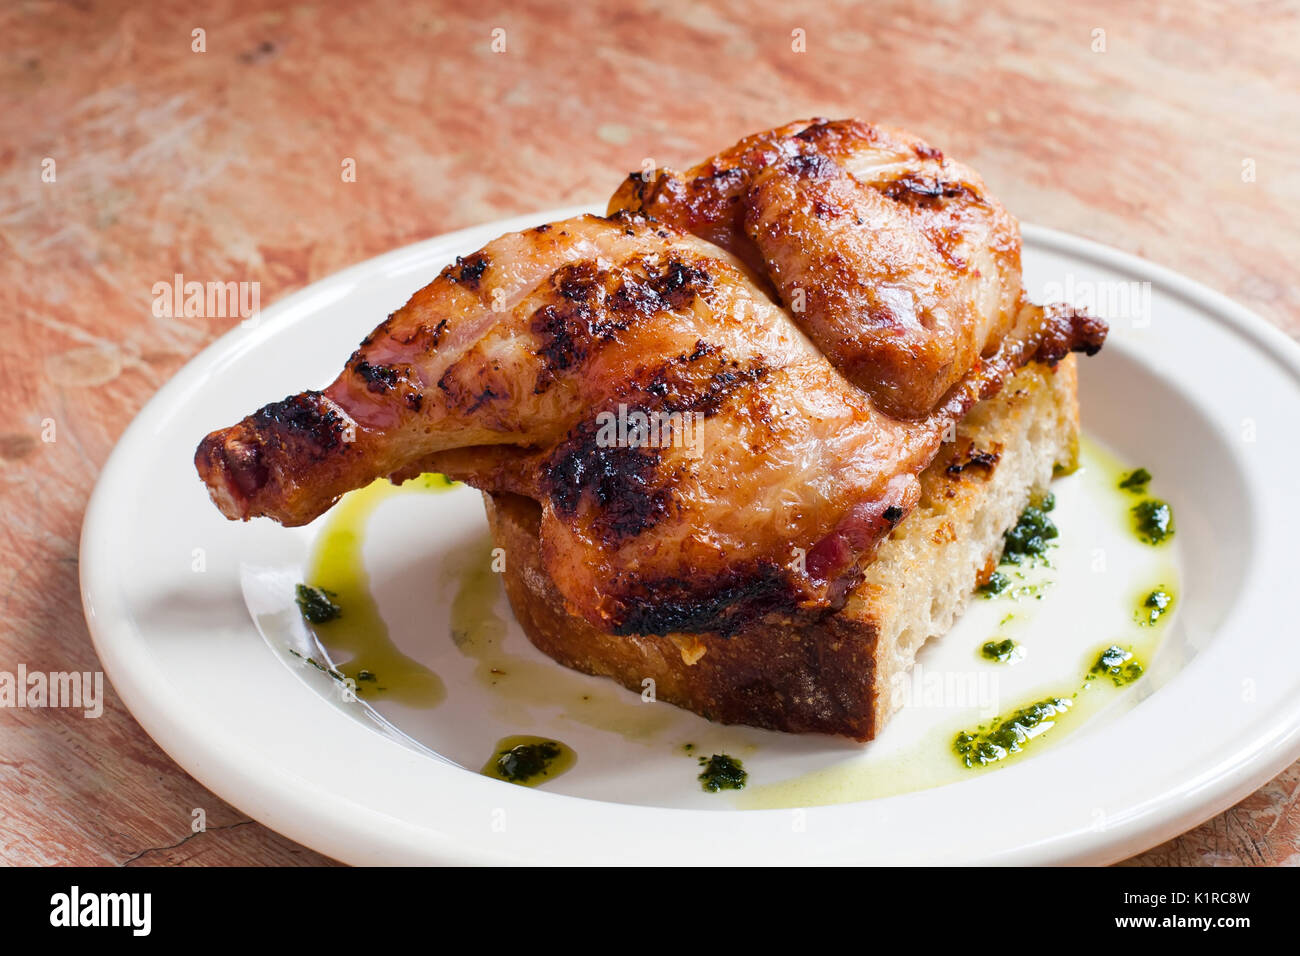 Natural organic Grilled chicken leg on bread close-up. white plate background - Stock Image